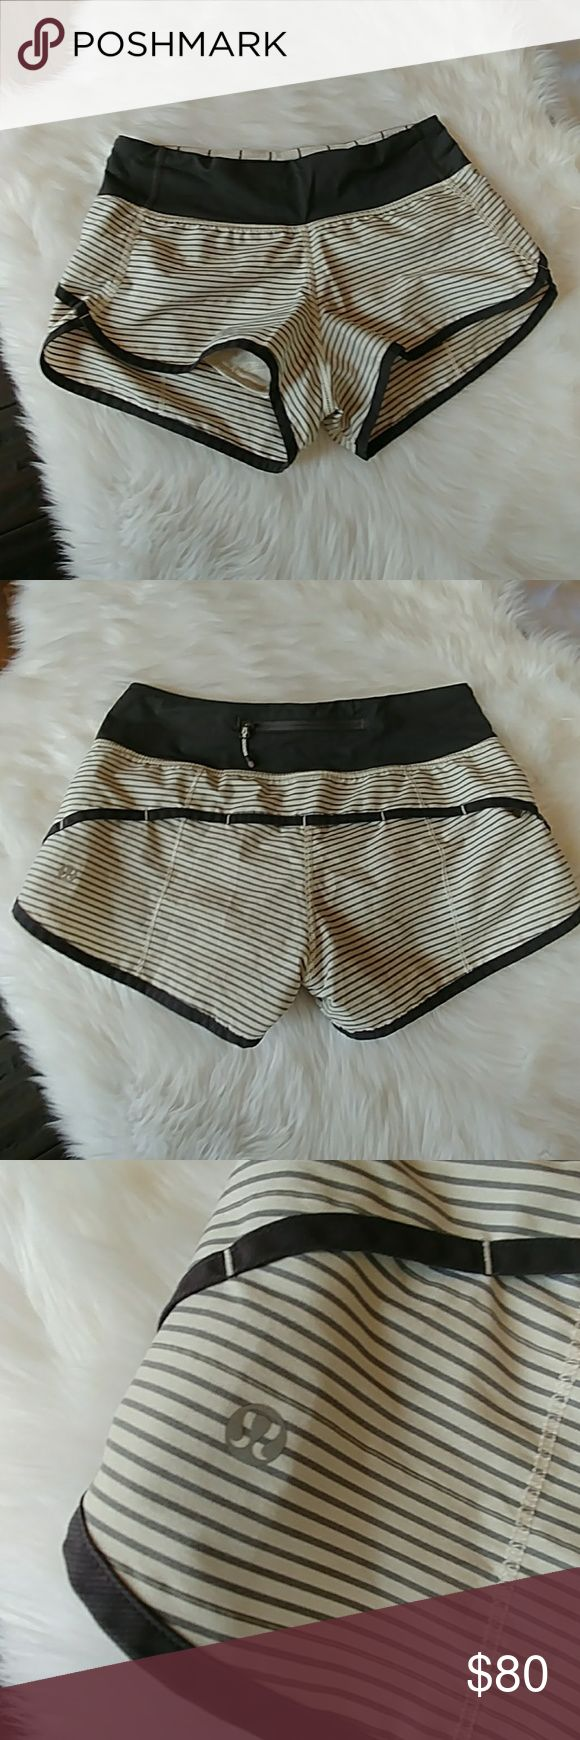 Lululemon Speed Shorts Lululemon Speed Shorts Size 2 Would love to trade for a size 4 lululemon athletica Shorts